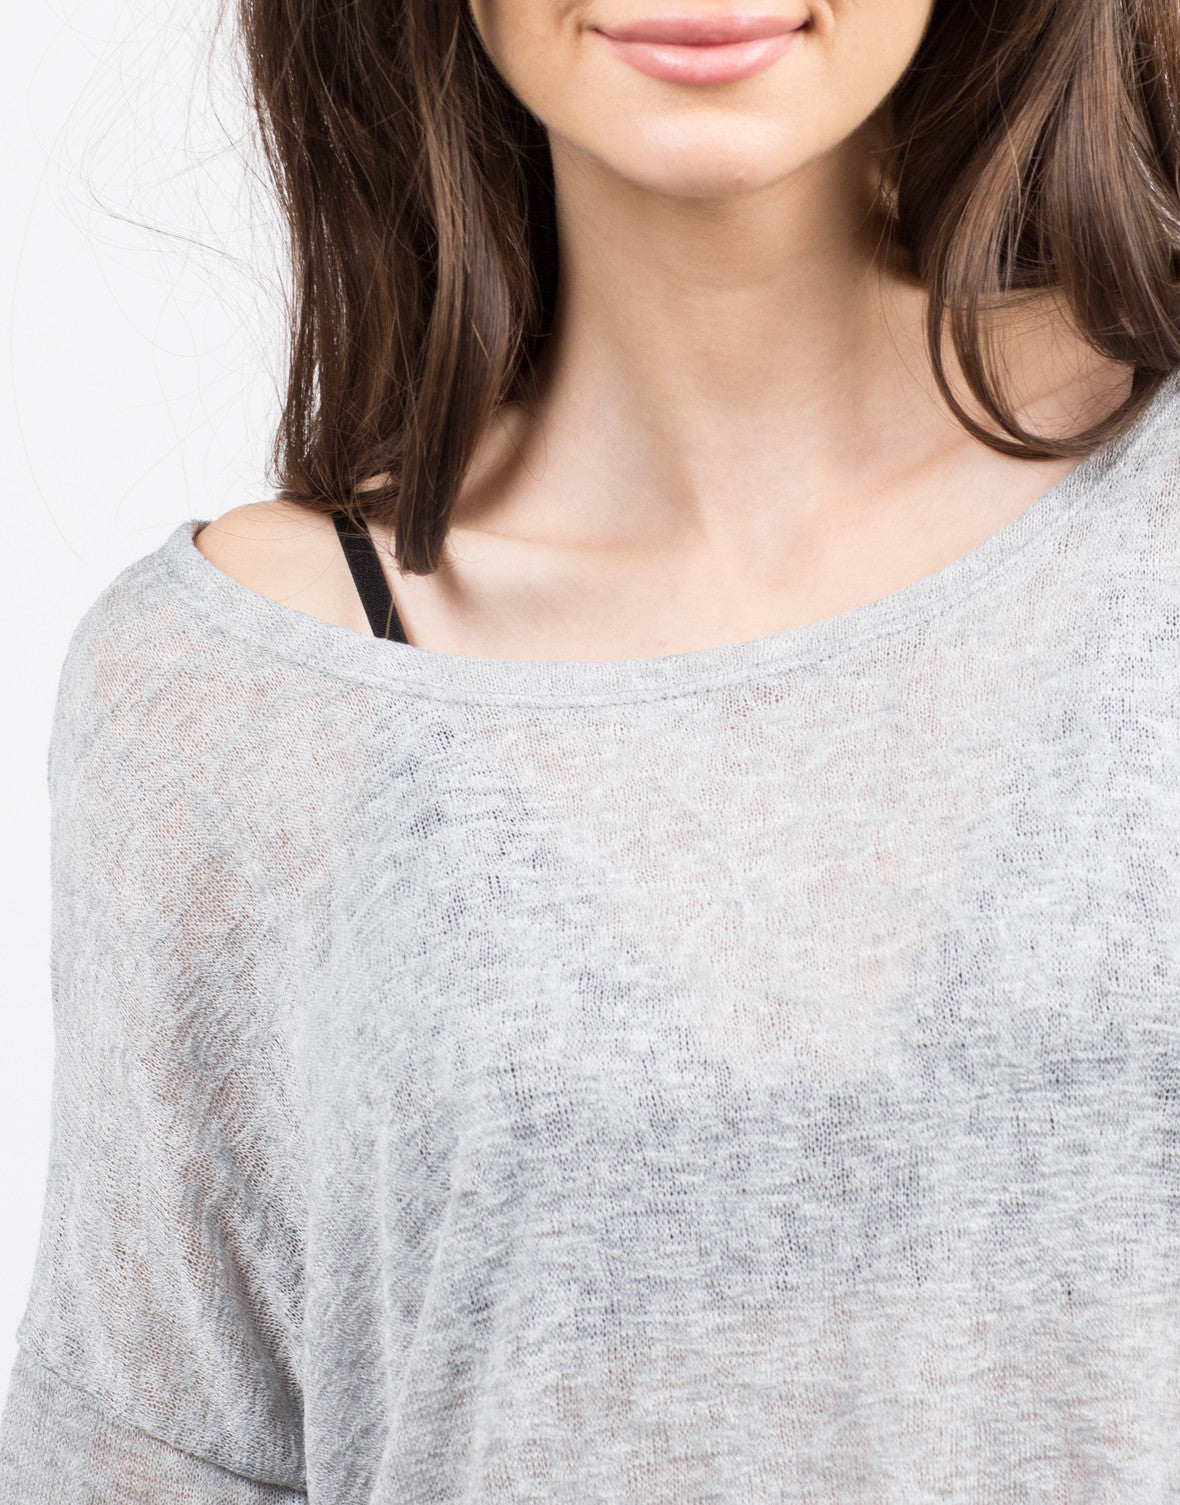 Detail of Boxy Lightweight Sweater Top